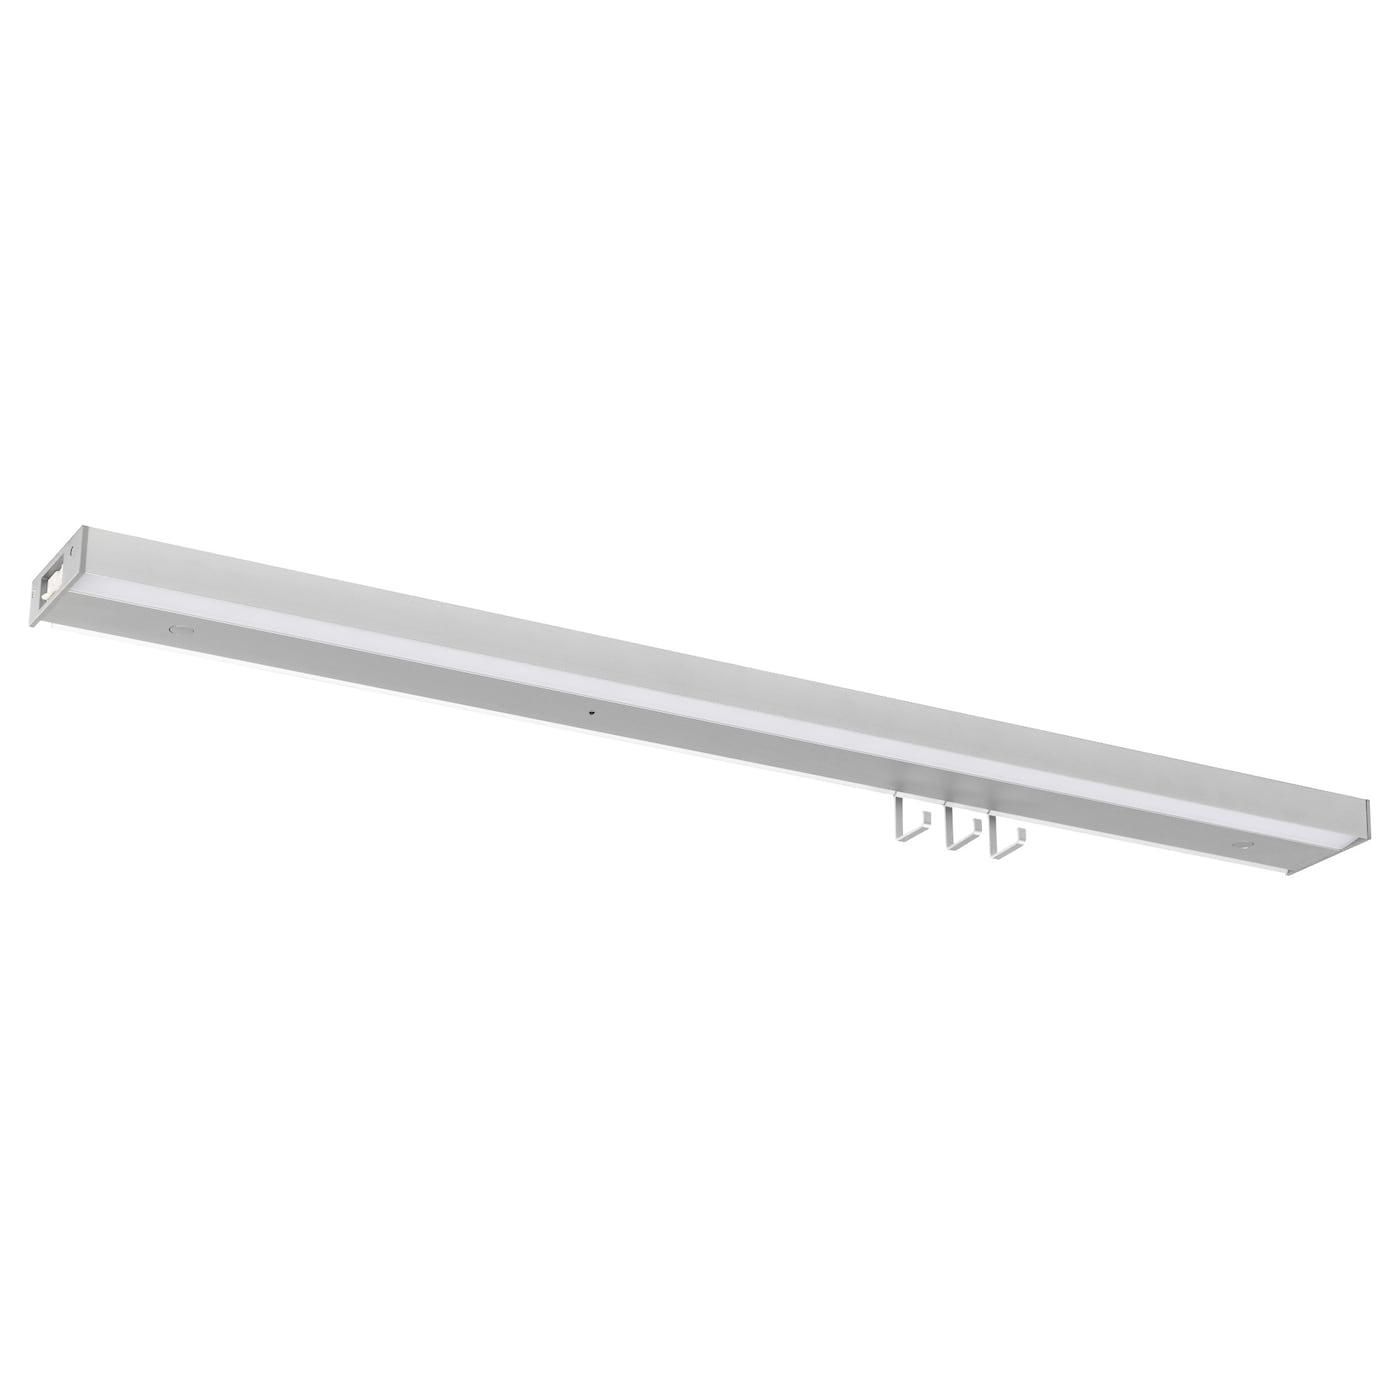 IKEA UTRUSTA LED worktop lighting